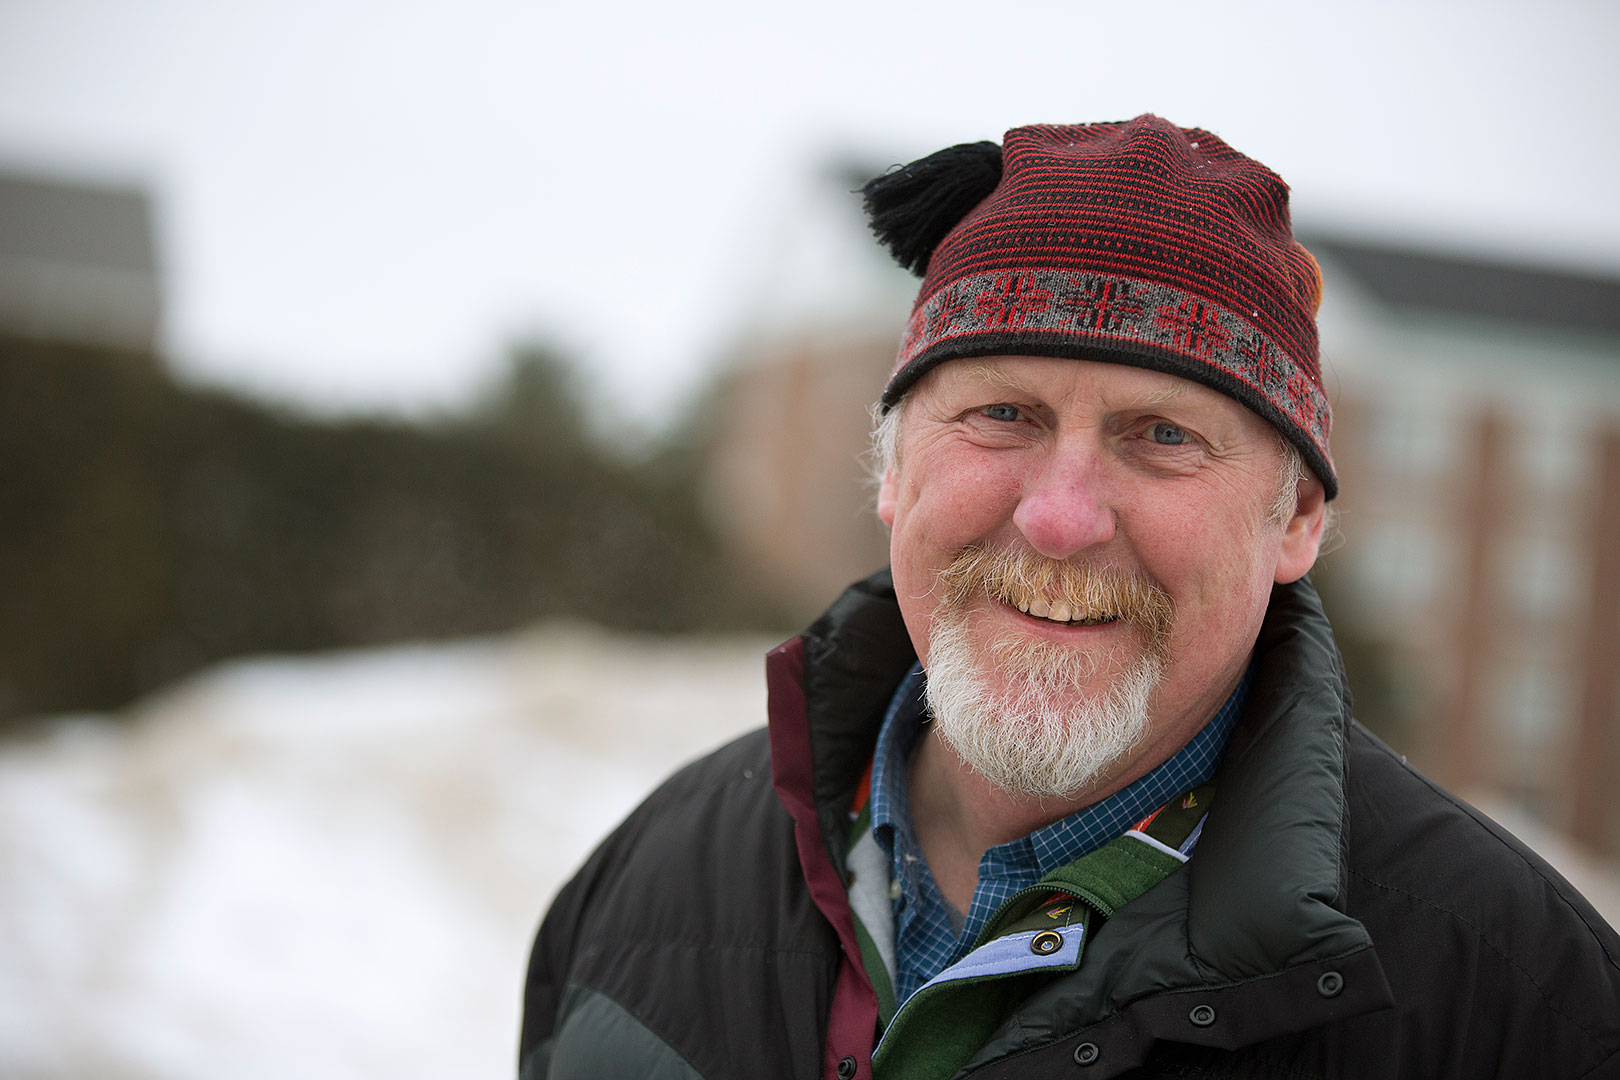 Professor of Geology Mike Retelle's research in the Arctic looks at glacial and sea level history, as well as records of climate change preserved lake sediments. (Phyllis Graber Jensen/Bates College)